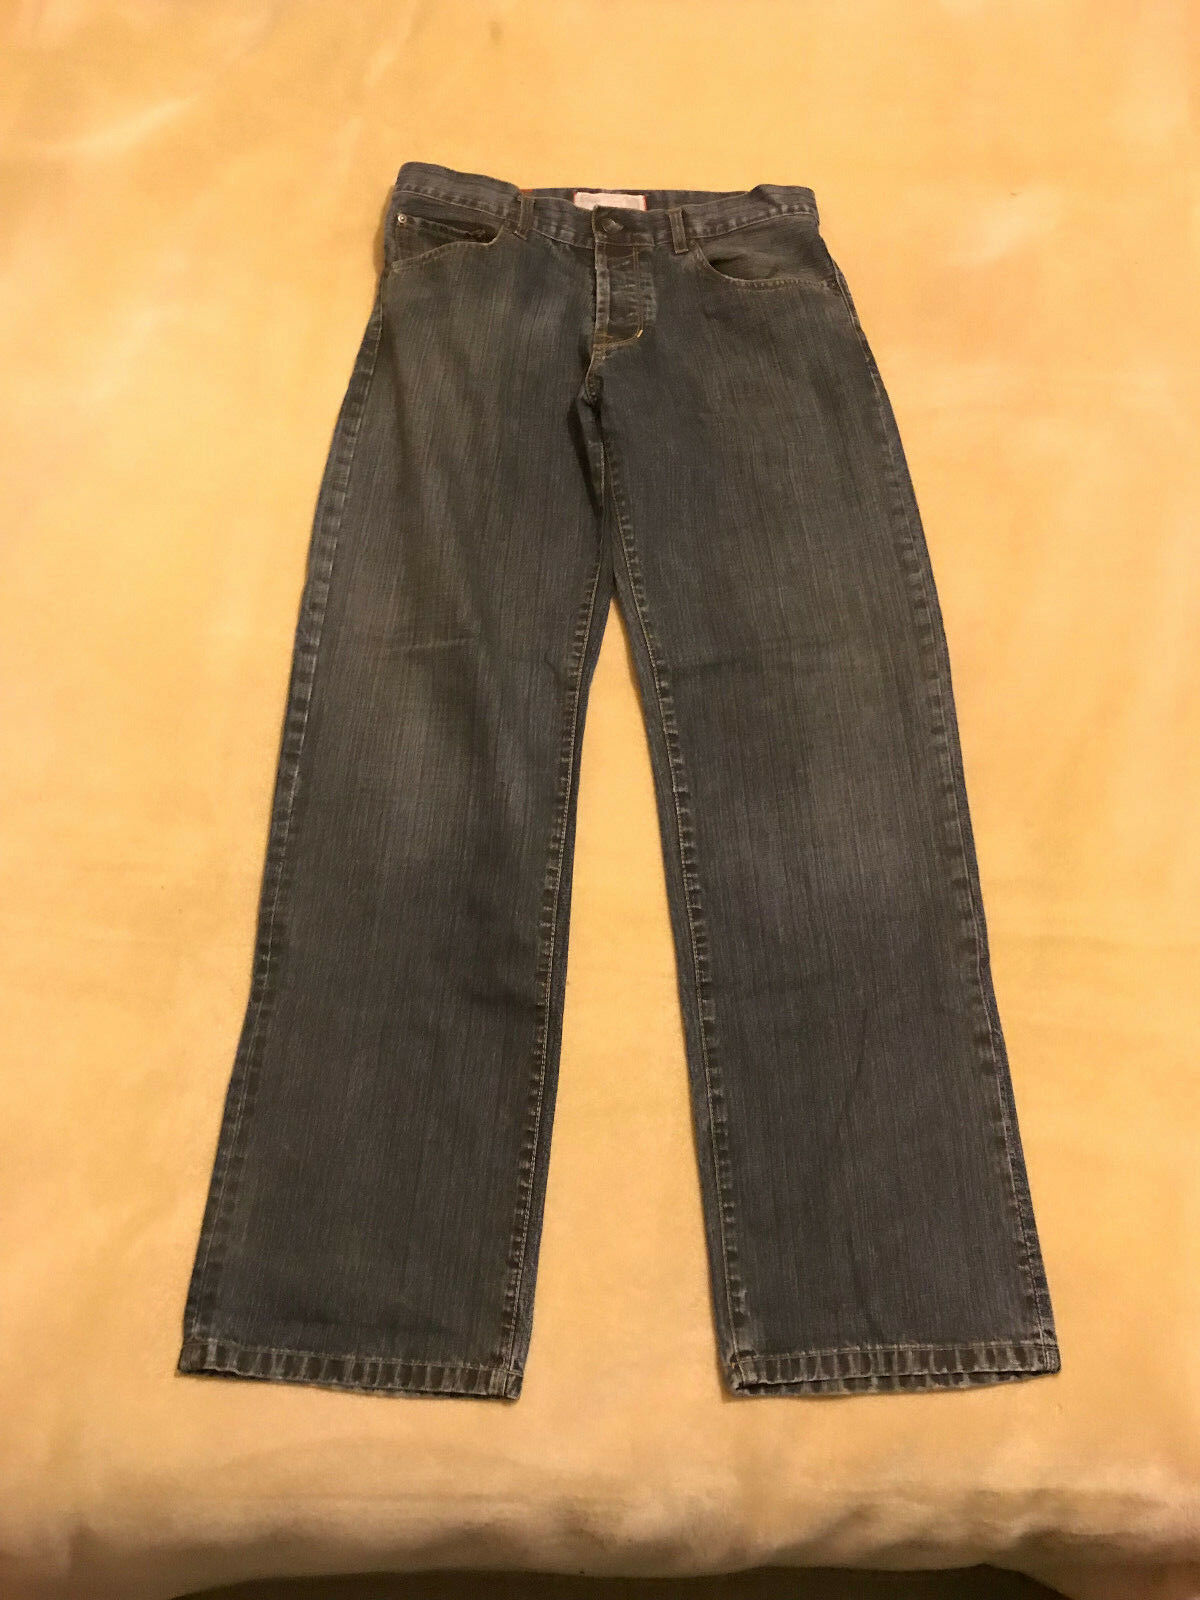 32 Taille Firetrap Taille Anti Coupe Taille Confort Jeans Homme afY88 76e1f876195